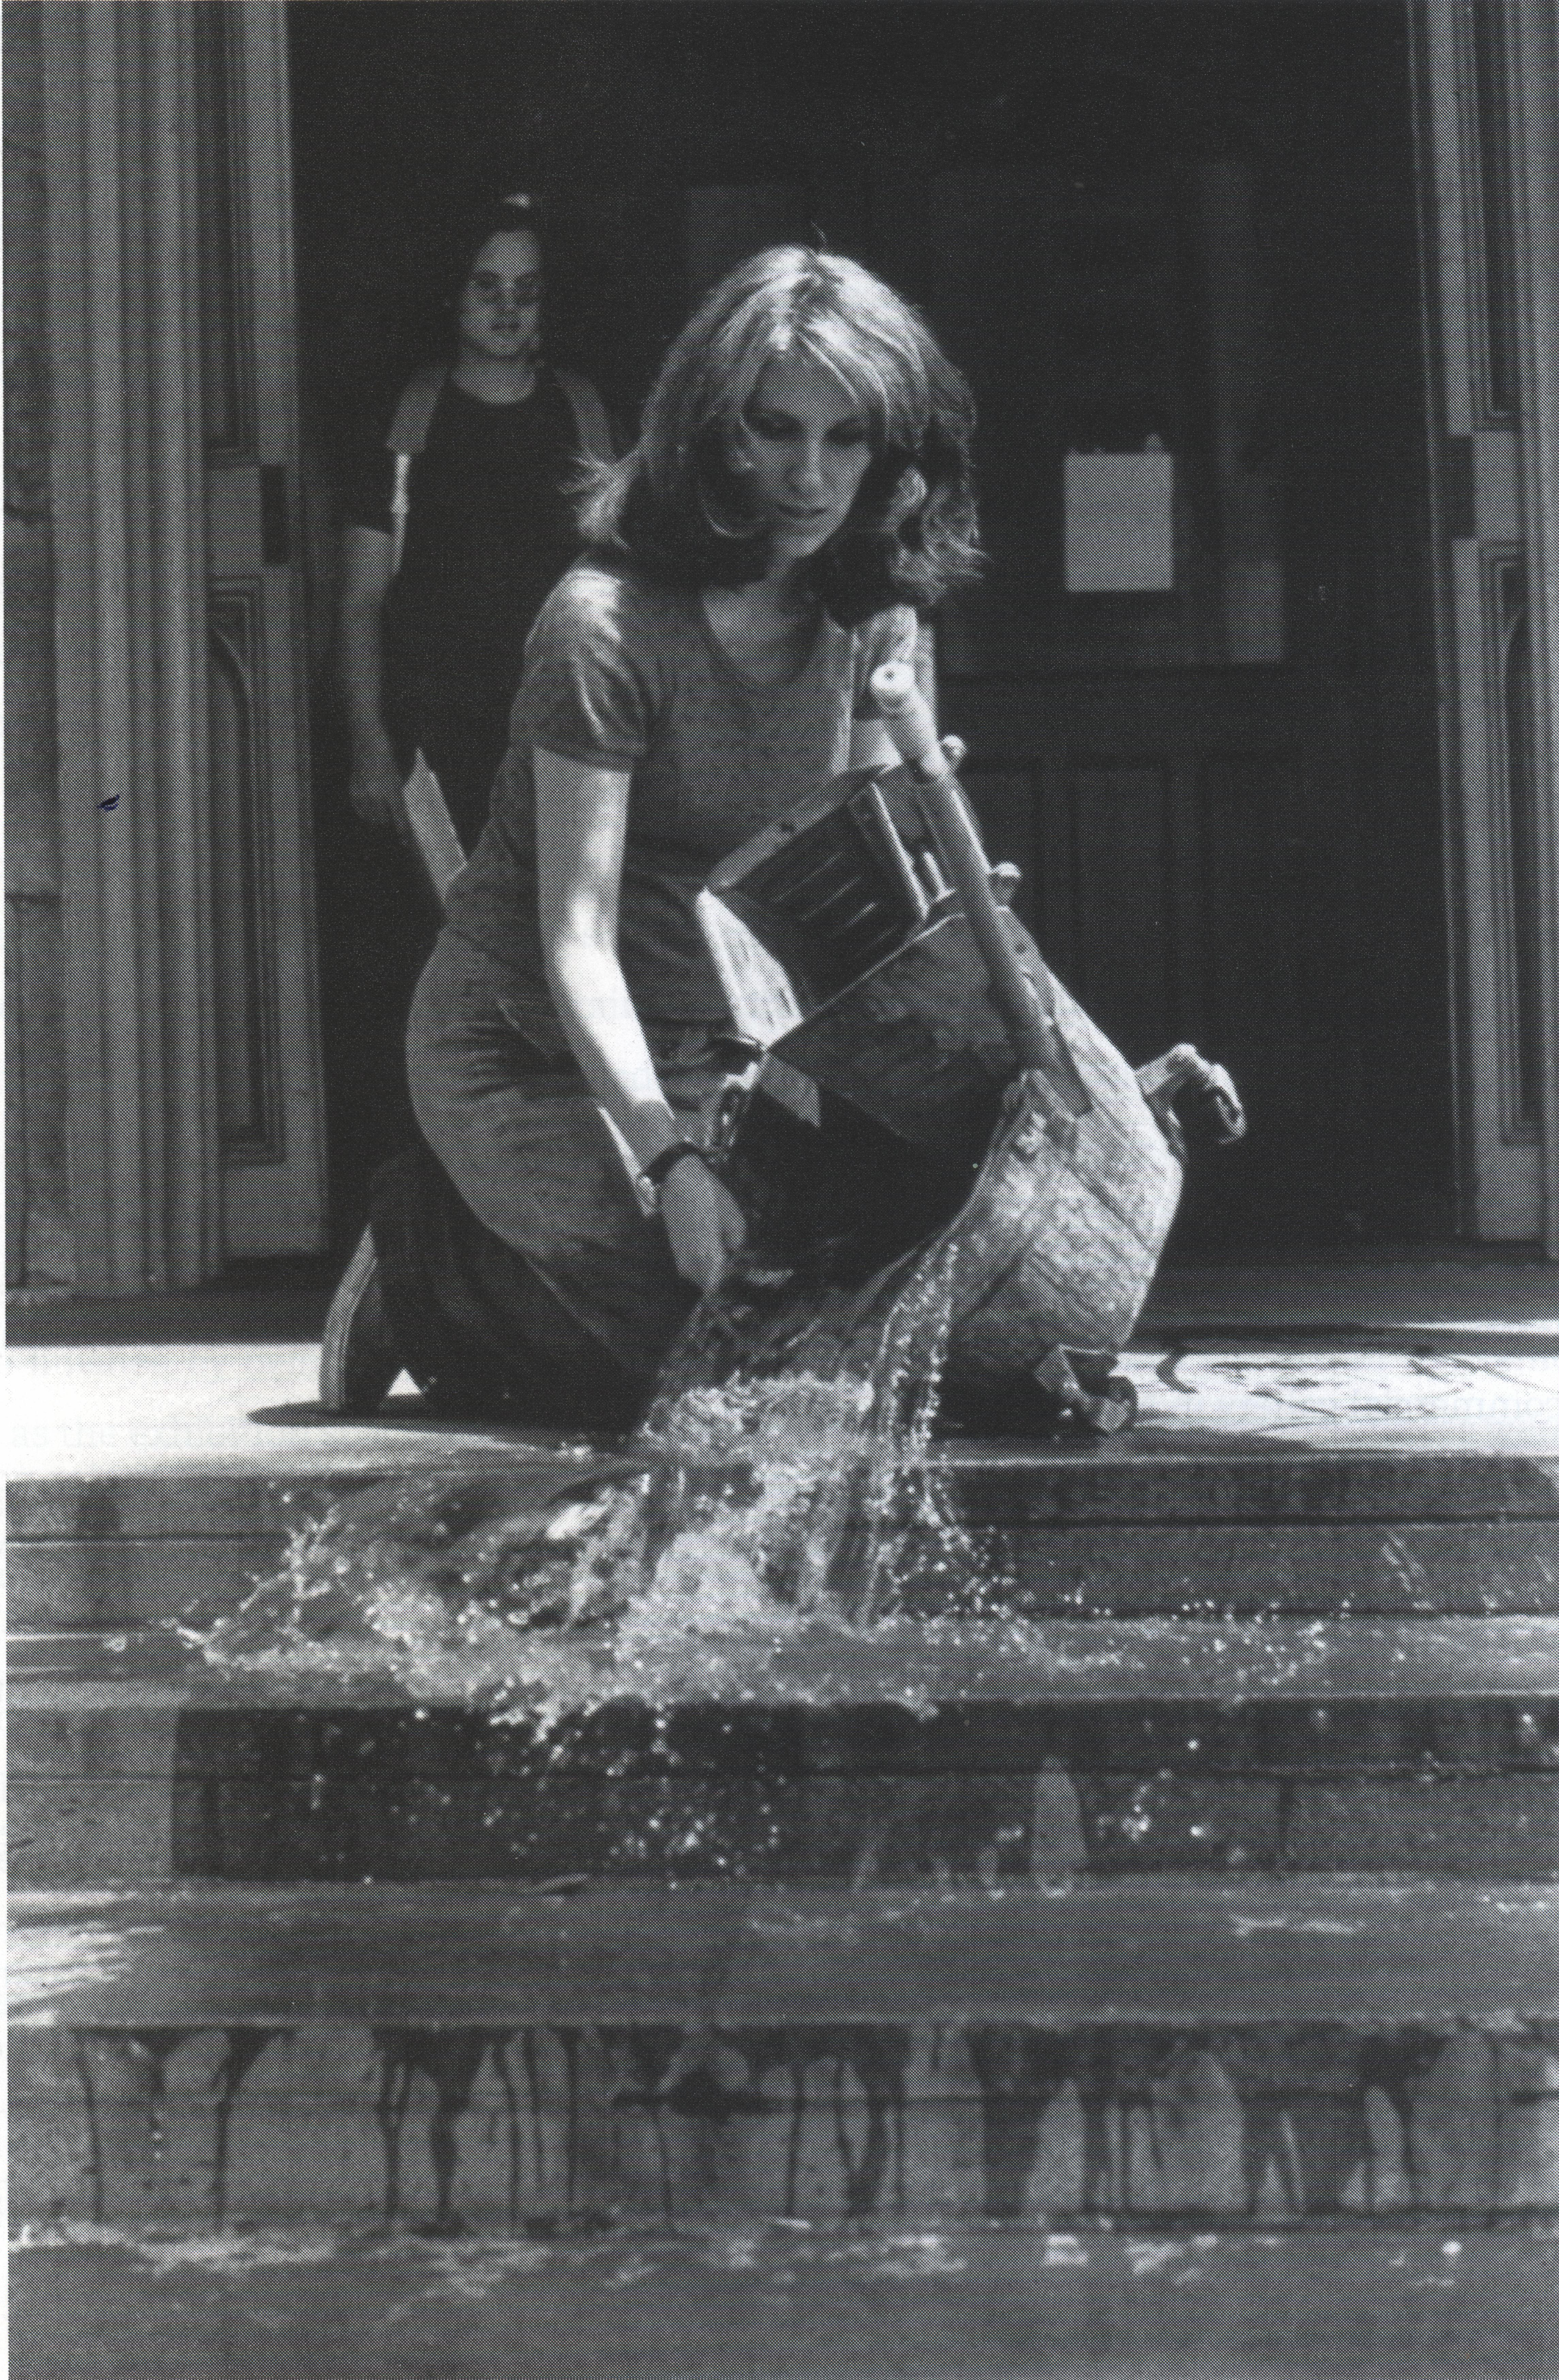 Mierle Laderman Ukeles, Hartford Wash: Washing/Tracks/Maintenence: Outside, 1973, performans w Wadsworth Atheneum